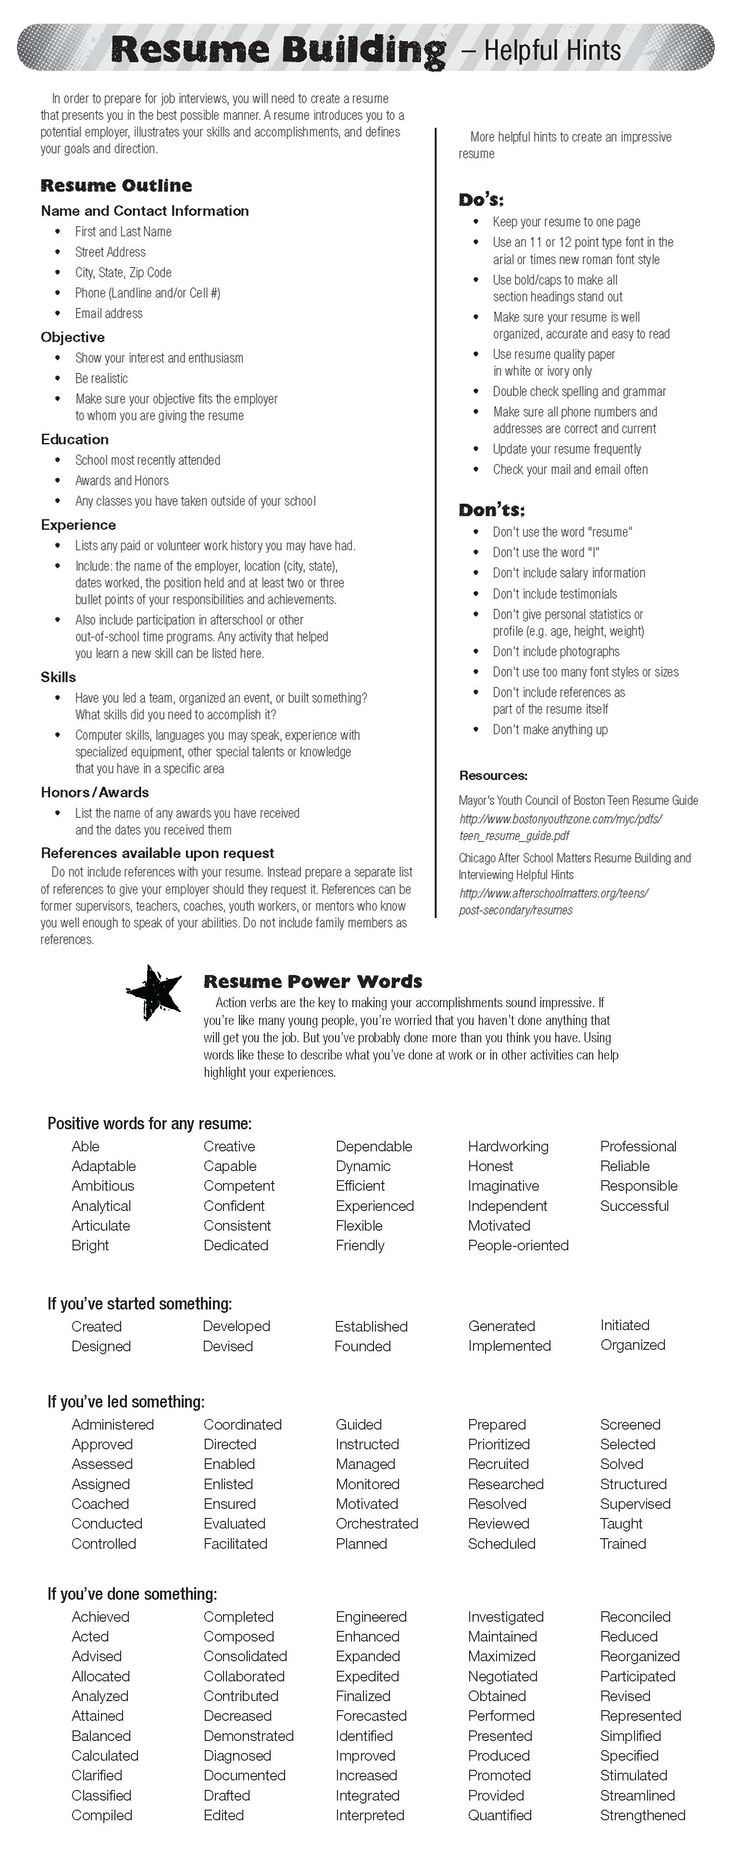 Opposenewapstandardsus  Marvellous  Ideas About Resume On Pinterest  Cv Format Resume Cv And  With Fetching  Ideas About Resume On Pinterest  Cv Format Resume Cv And Resume Templates With Adorable What Does Cv Stand For Resume Also Operation Manager Resume In Addition Free Teacher Resume Templates And Software Tester Resume As Well As Executive Summary Resume Example Additionally Example Skills For Resume From Pinterestcom With Opposenewapstandardsus  Fetching  Ideas About Resume On Pinterest  Cv Format Resume Cv And  With Adorable  Ideas About Resume On Pinterest  Cv Format Resume Cv And Resume Templates And Marvellous What Does Cv Stand For Resume Also Operation Manager Resume In Addition Free Teacher Resume Templates From Pinterestcom